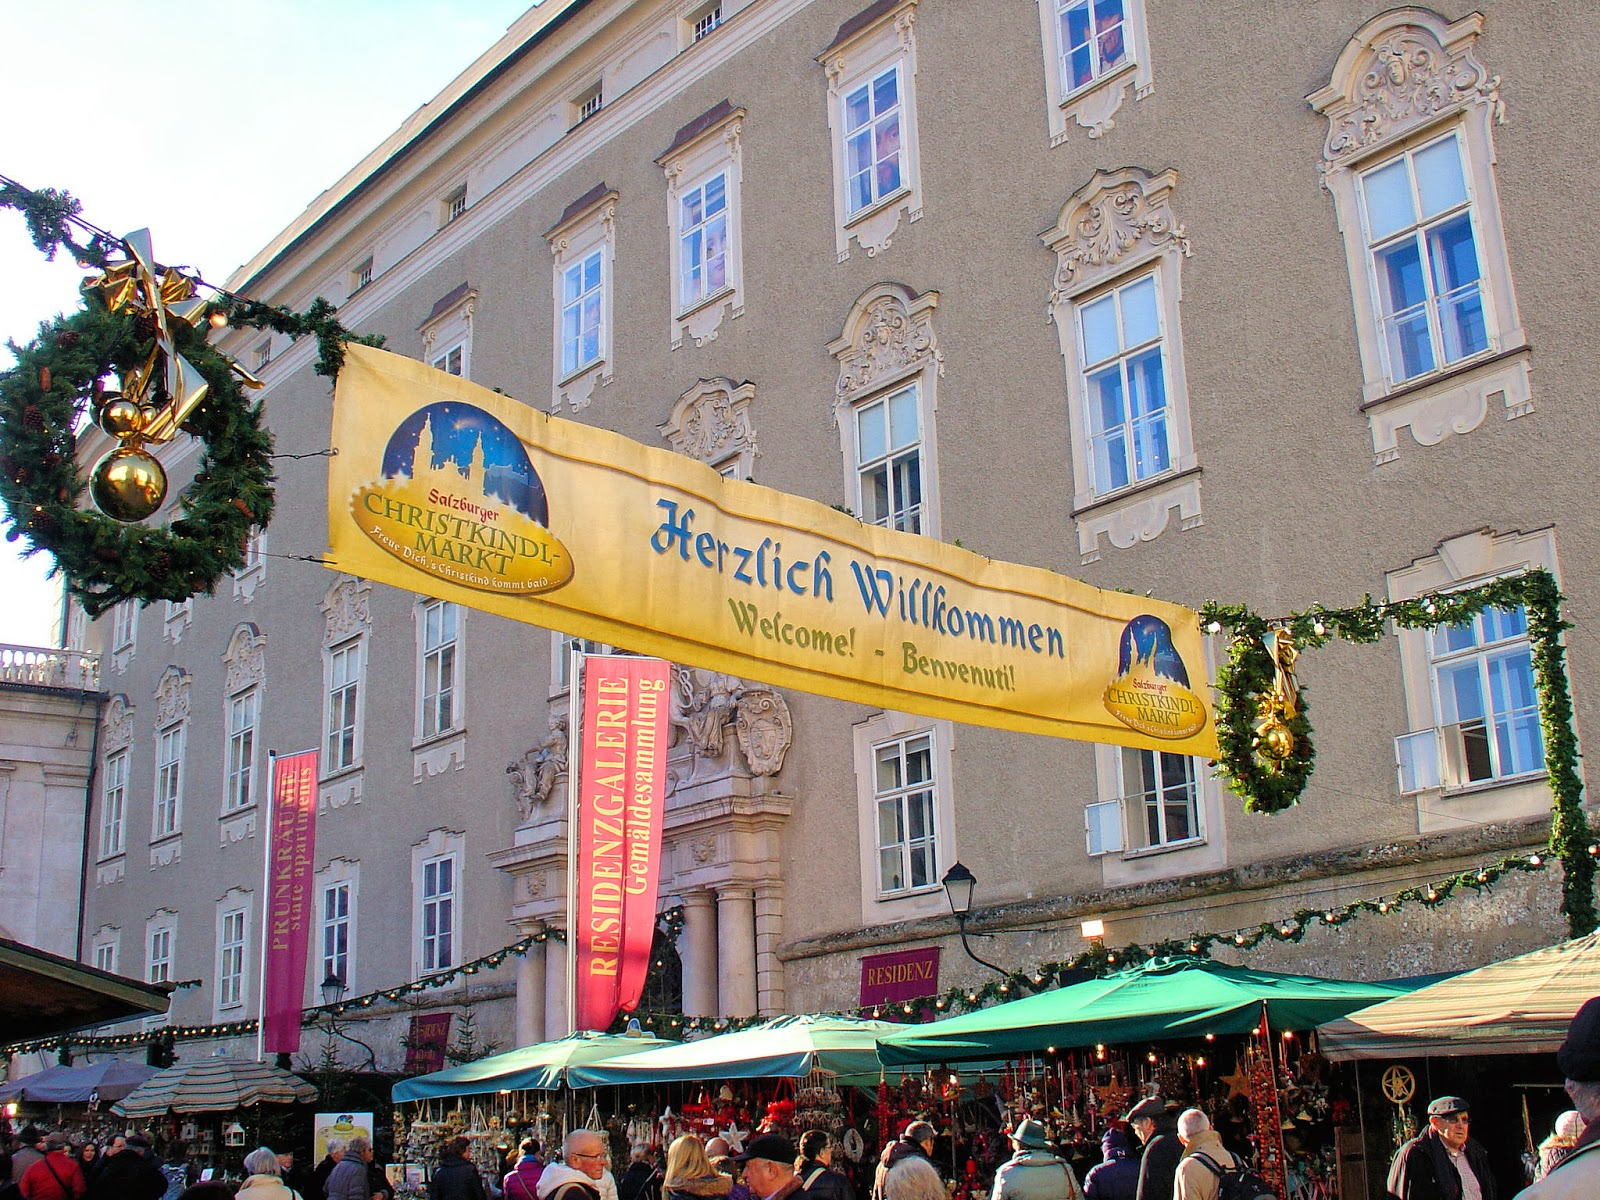 As the sign states, Herzlich Willkommen to the Salzburg Christkindlmarkt in the Domplatz!